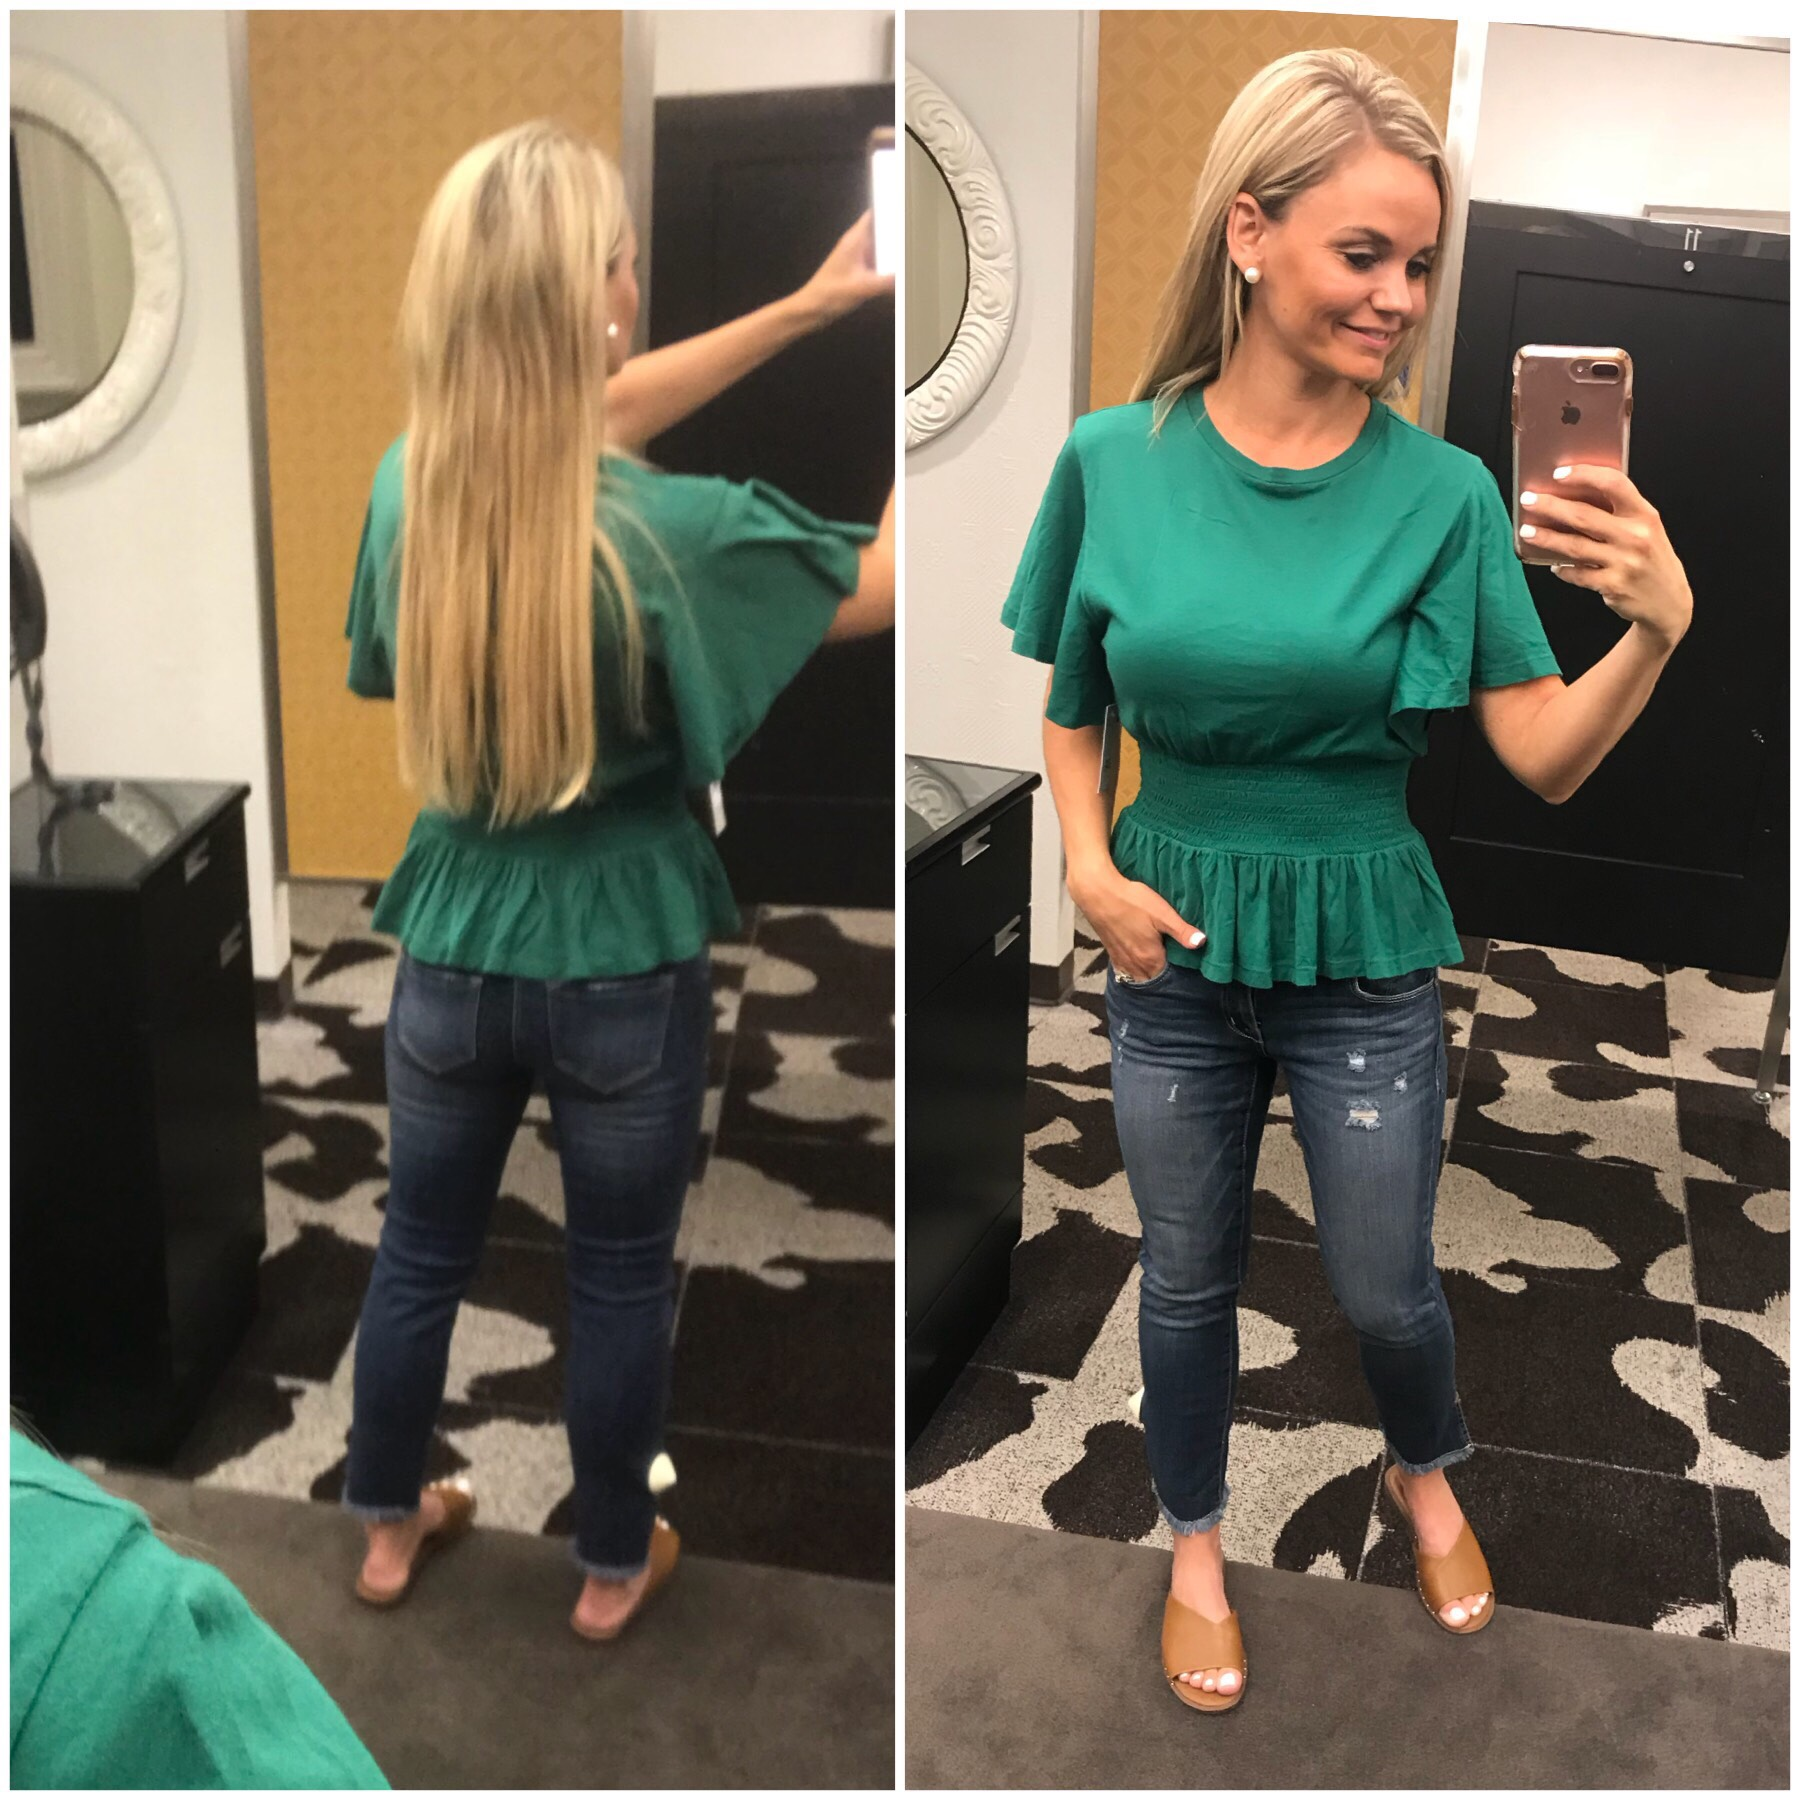 Nordstrom Dressing Room Try-On and outfit ideas.